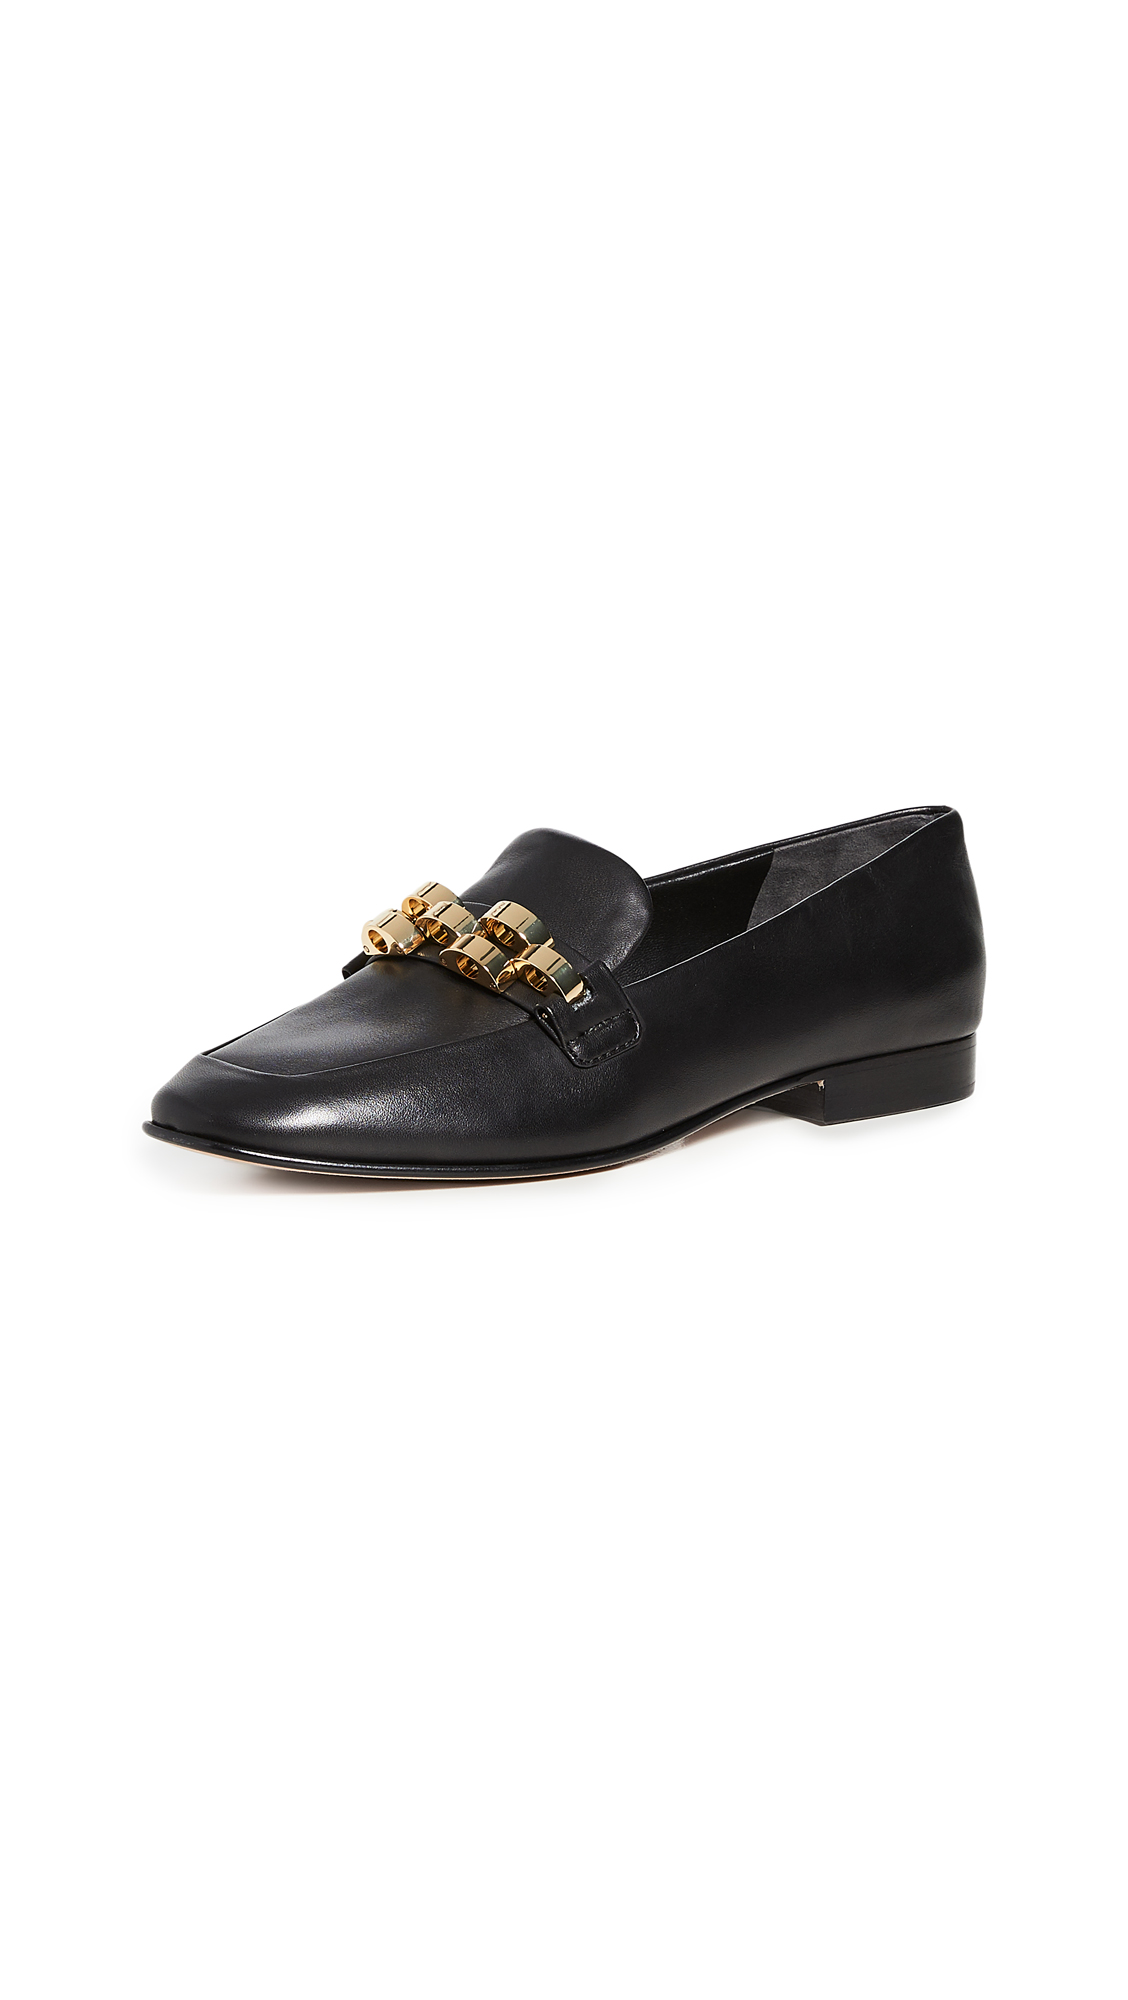 Veronica Beard ALIRE LOAFERS